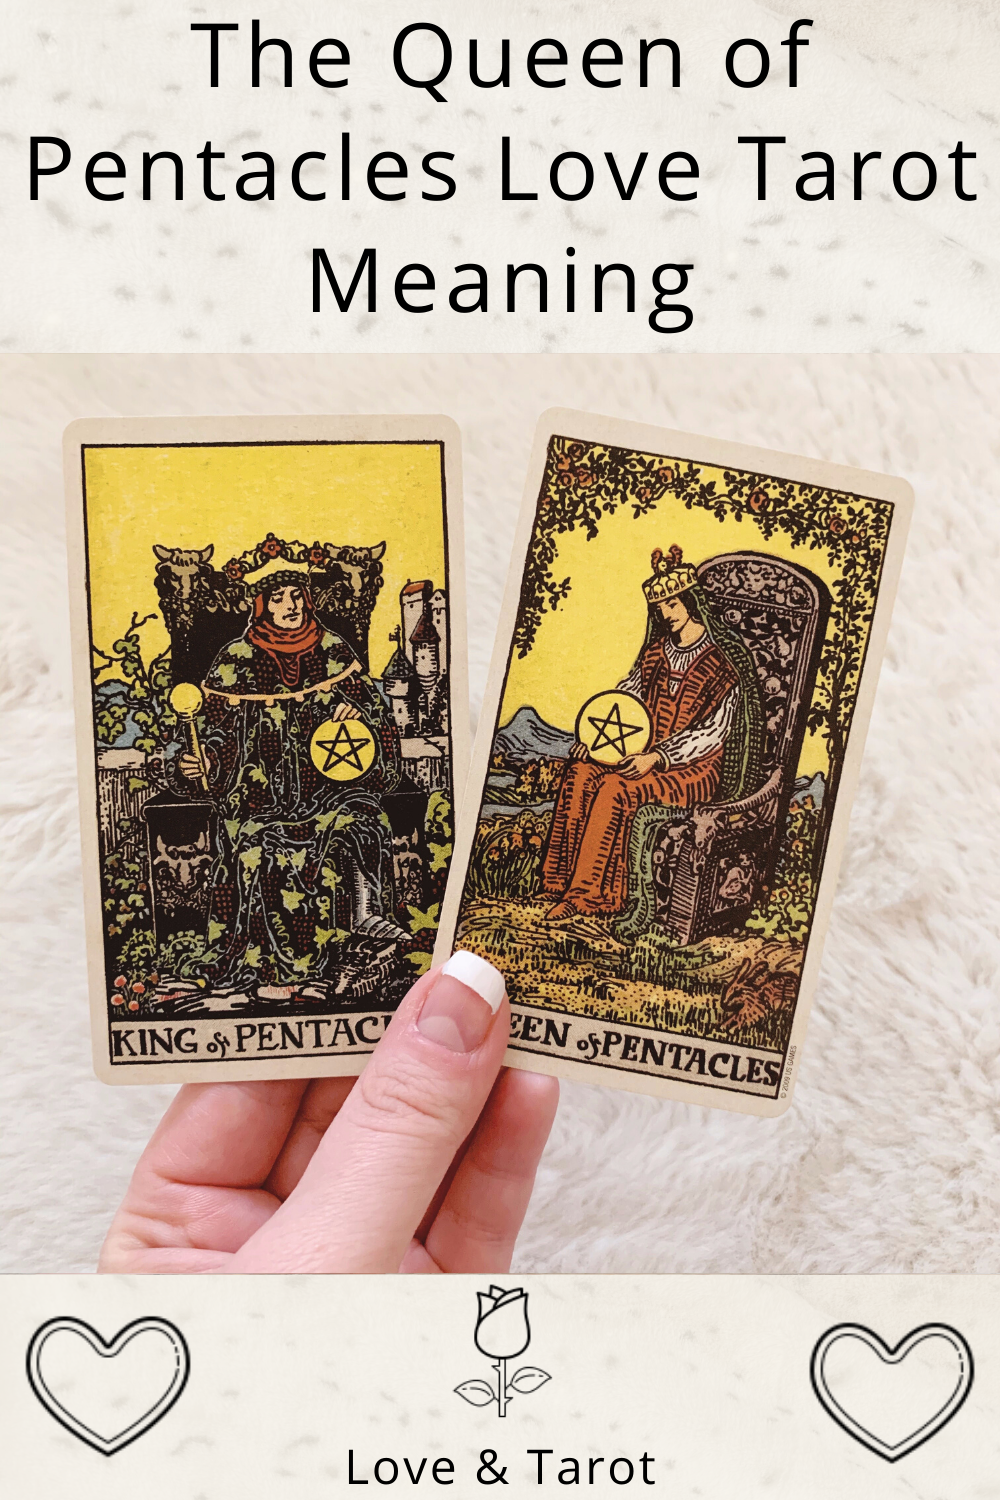 Queen of Pentacles Love Tarot Meaning